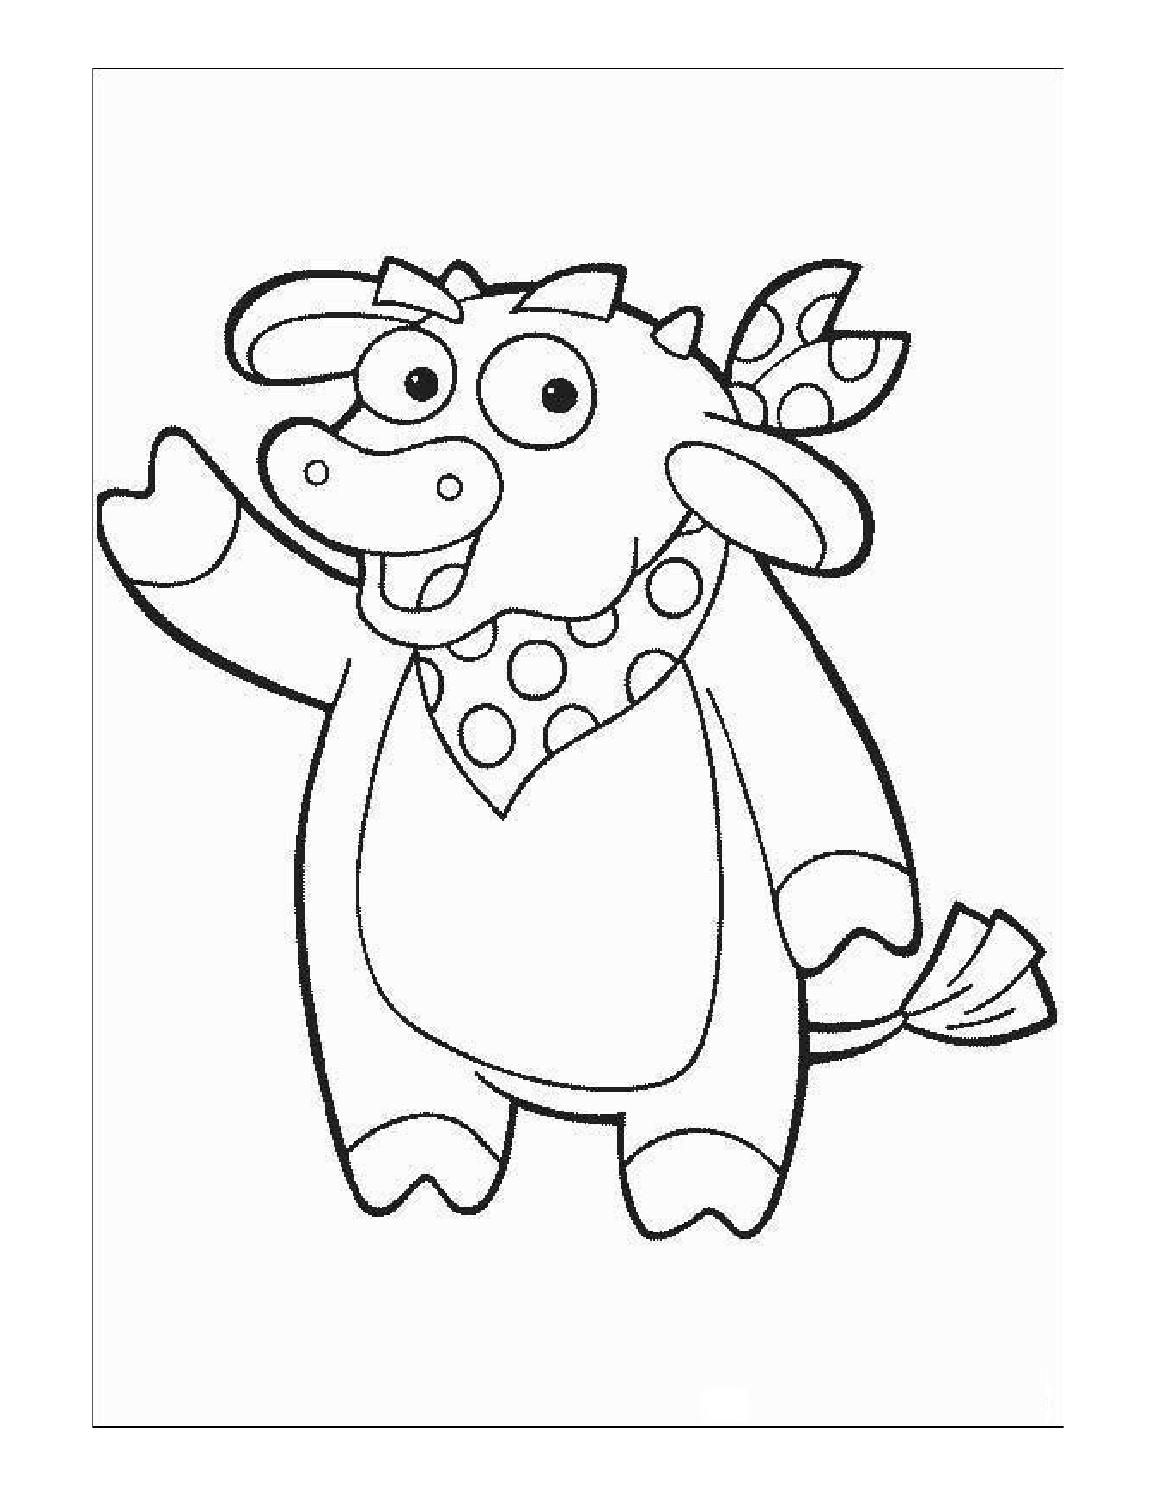 Dora La Exploradora Libros Para Colorear Dora Coloring Cartoon Coloring Pages Coloring Pictures